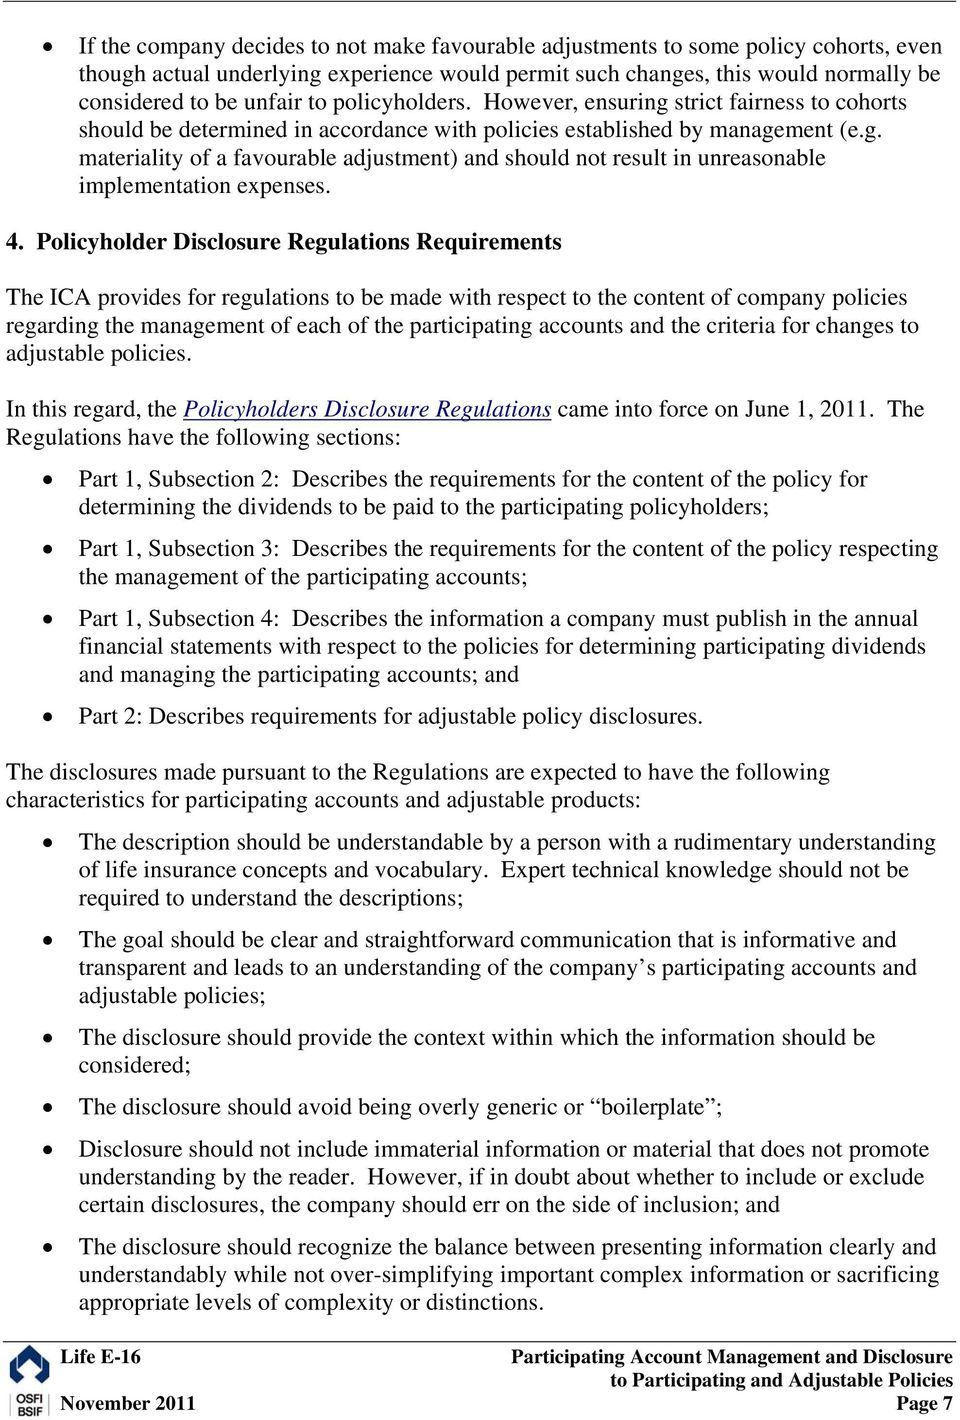 4. Policyholder Disclosure Regulations Requirements The ICA provides for regulations to be made with respect to the content of company policies regarding the management of each of the participating